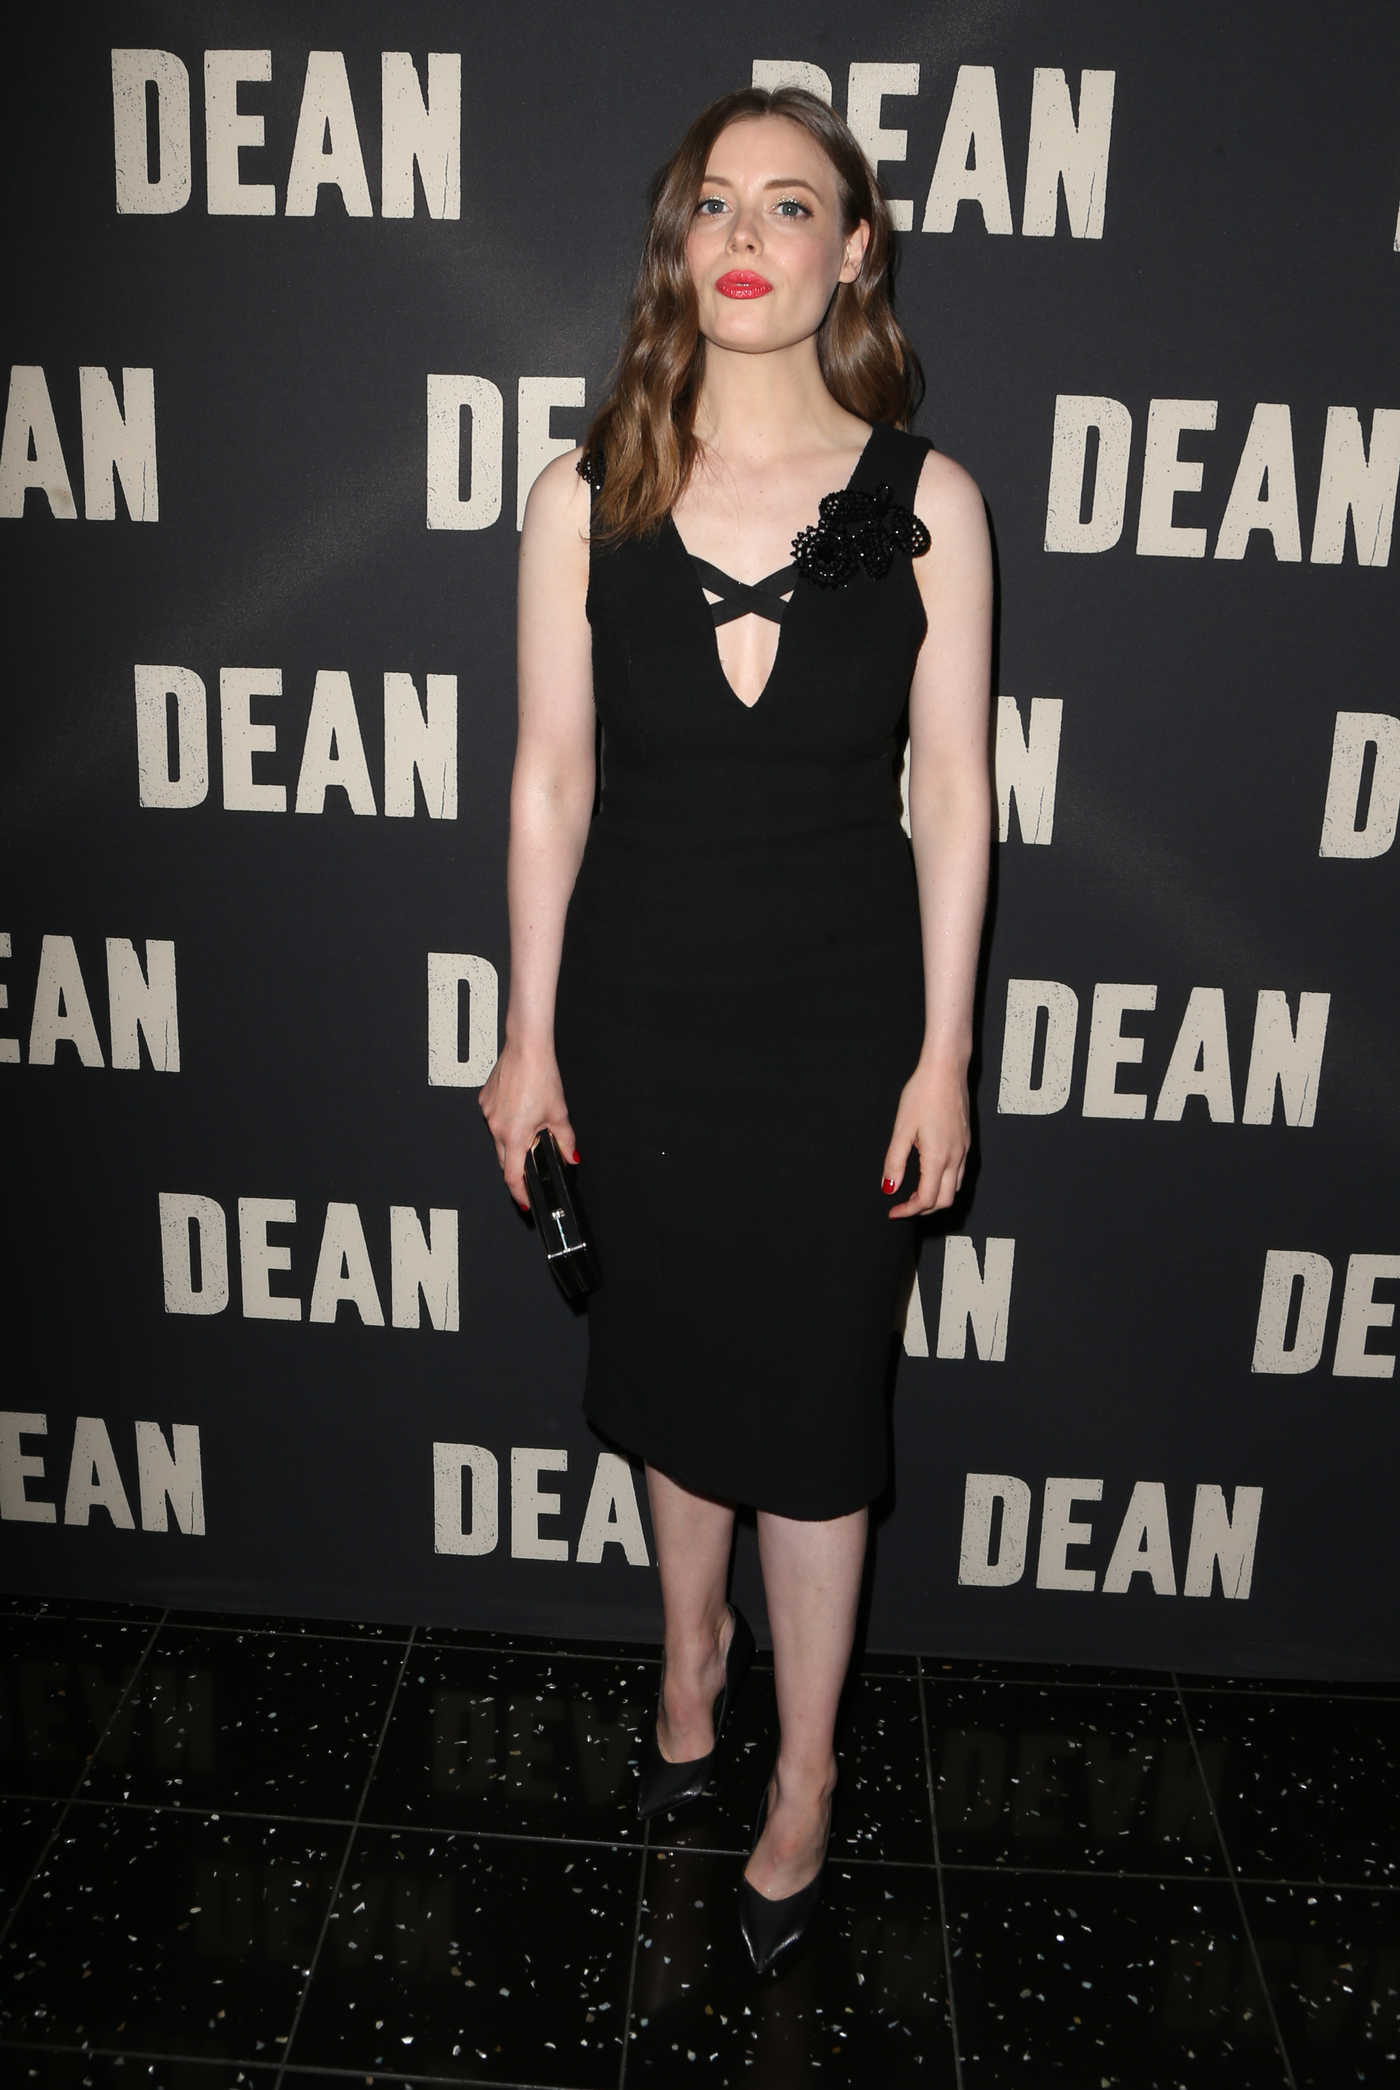 Gillian Jacobs at the Dean Screening in Los Angeles 05/24/2017